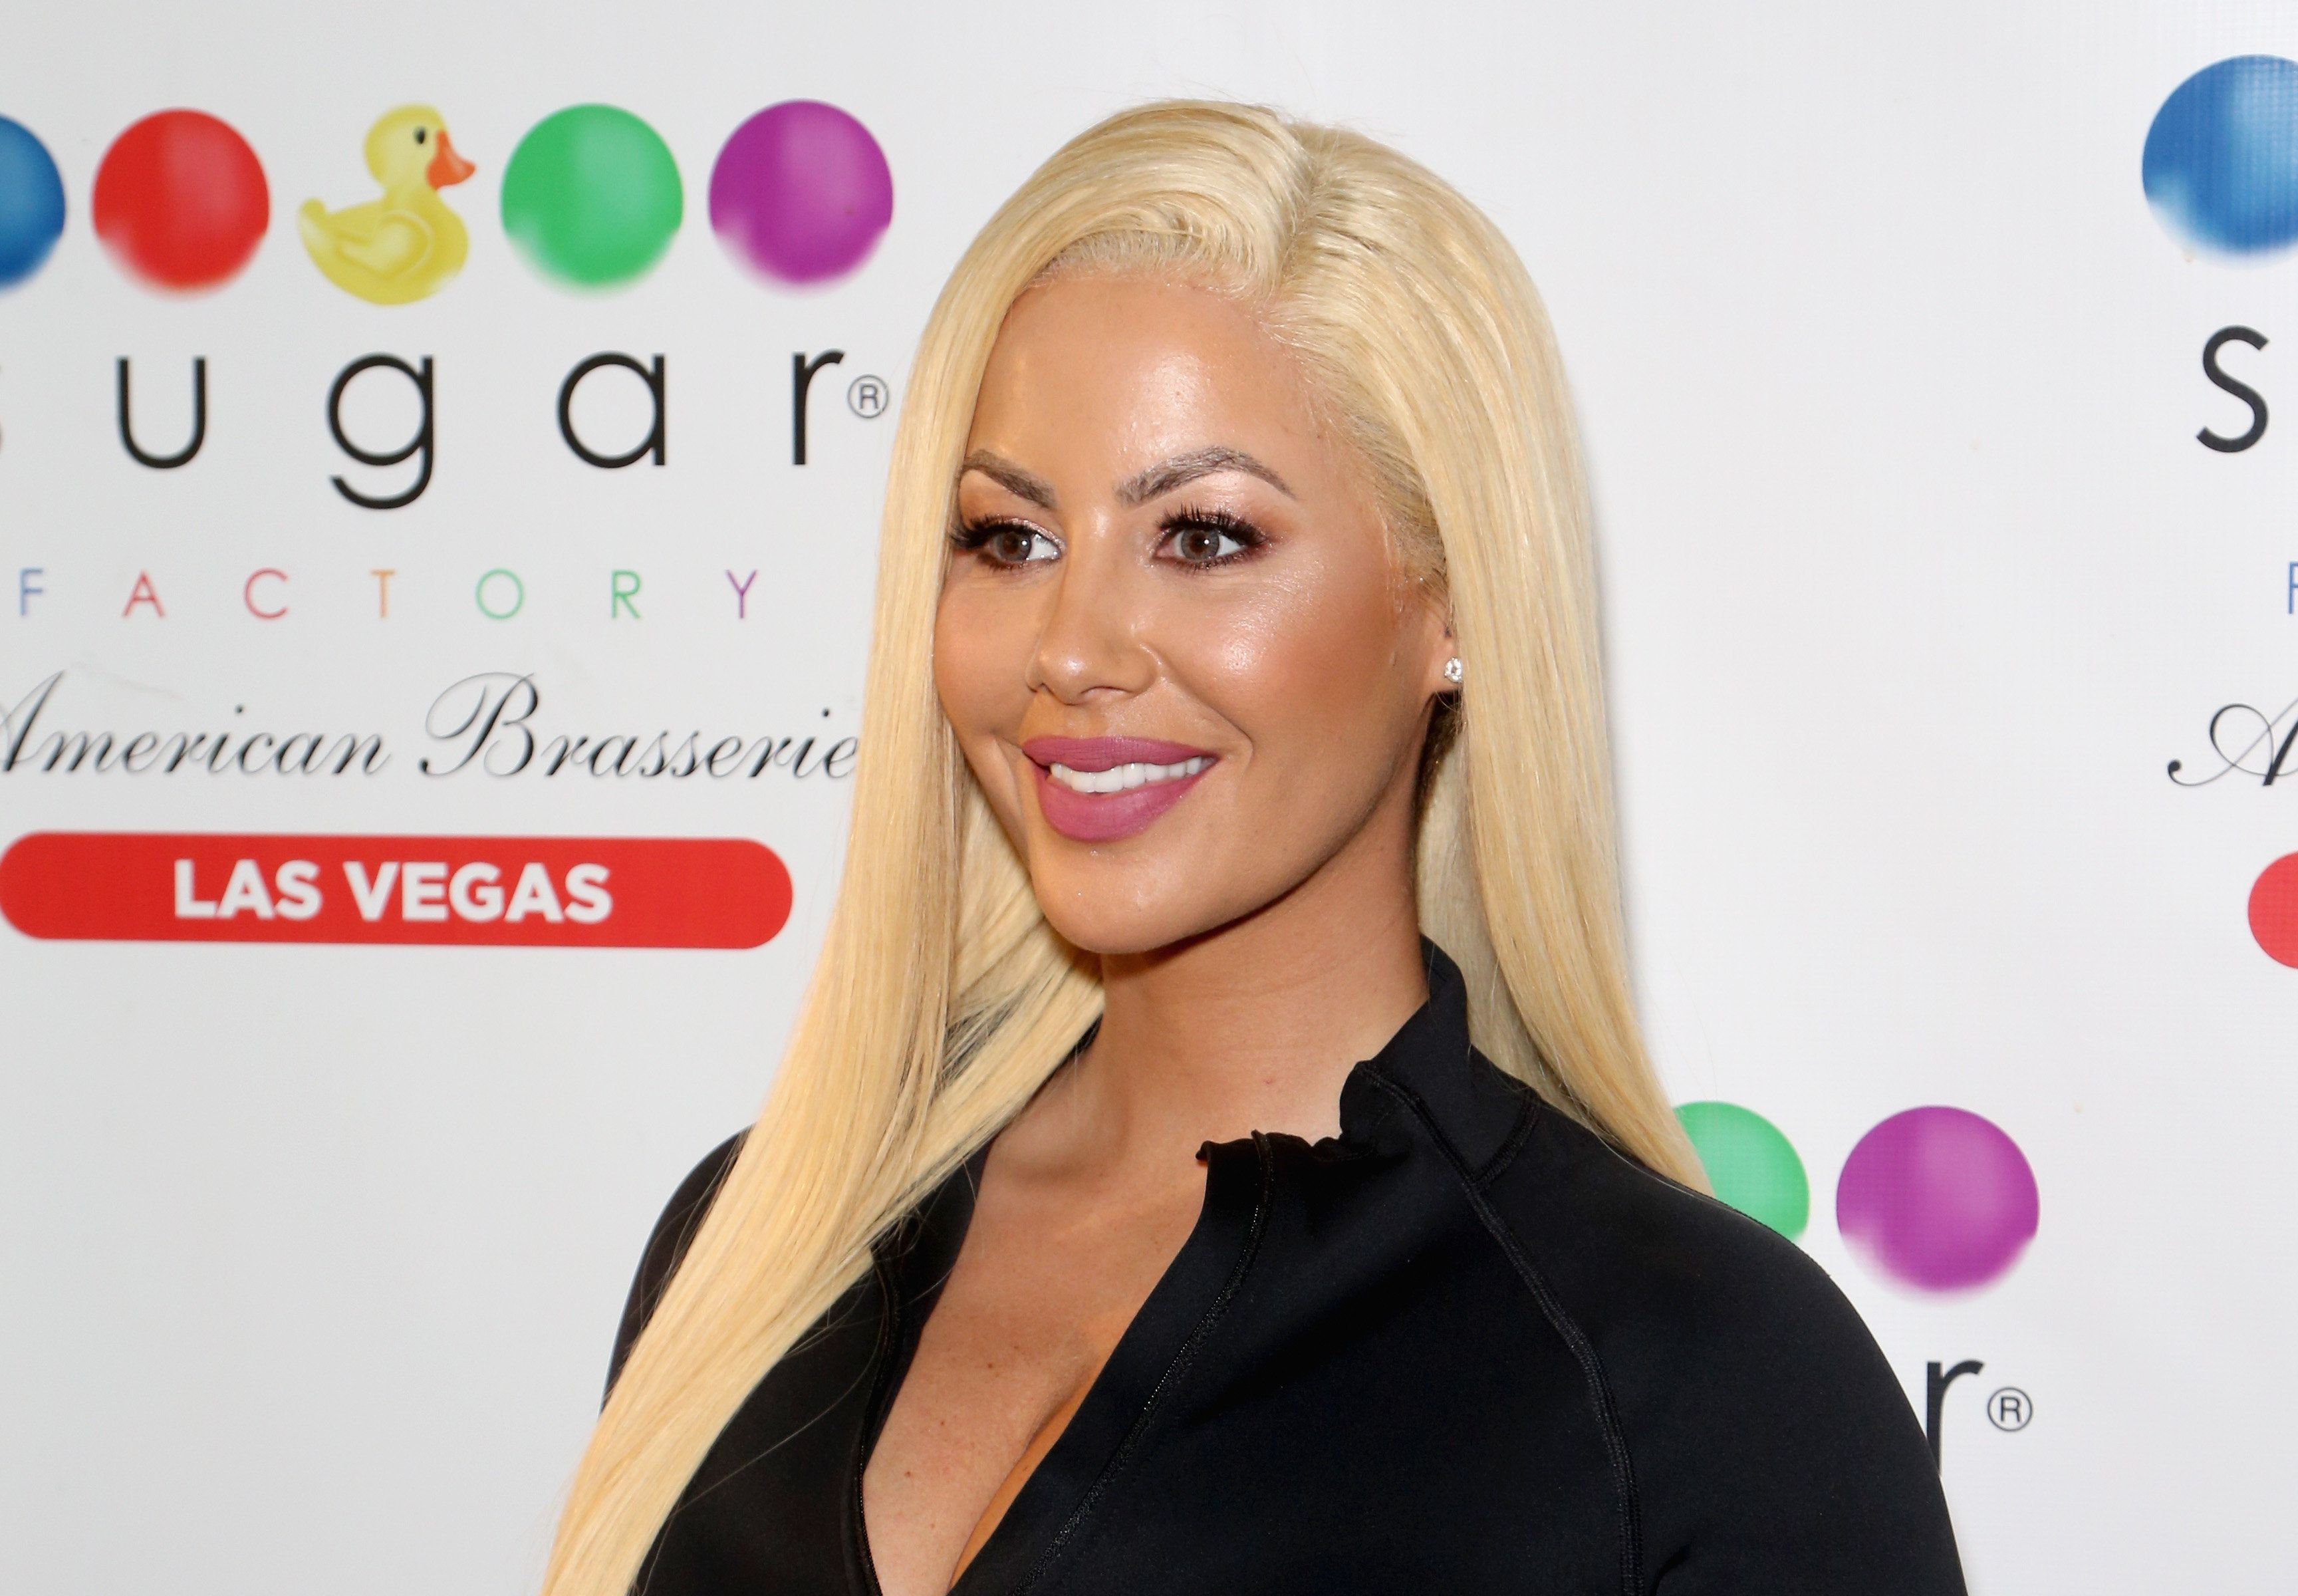 Say Goodbye to Amber Rose's Massive Boobs - She's Getting a Breast Reduction!